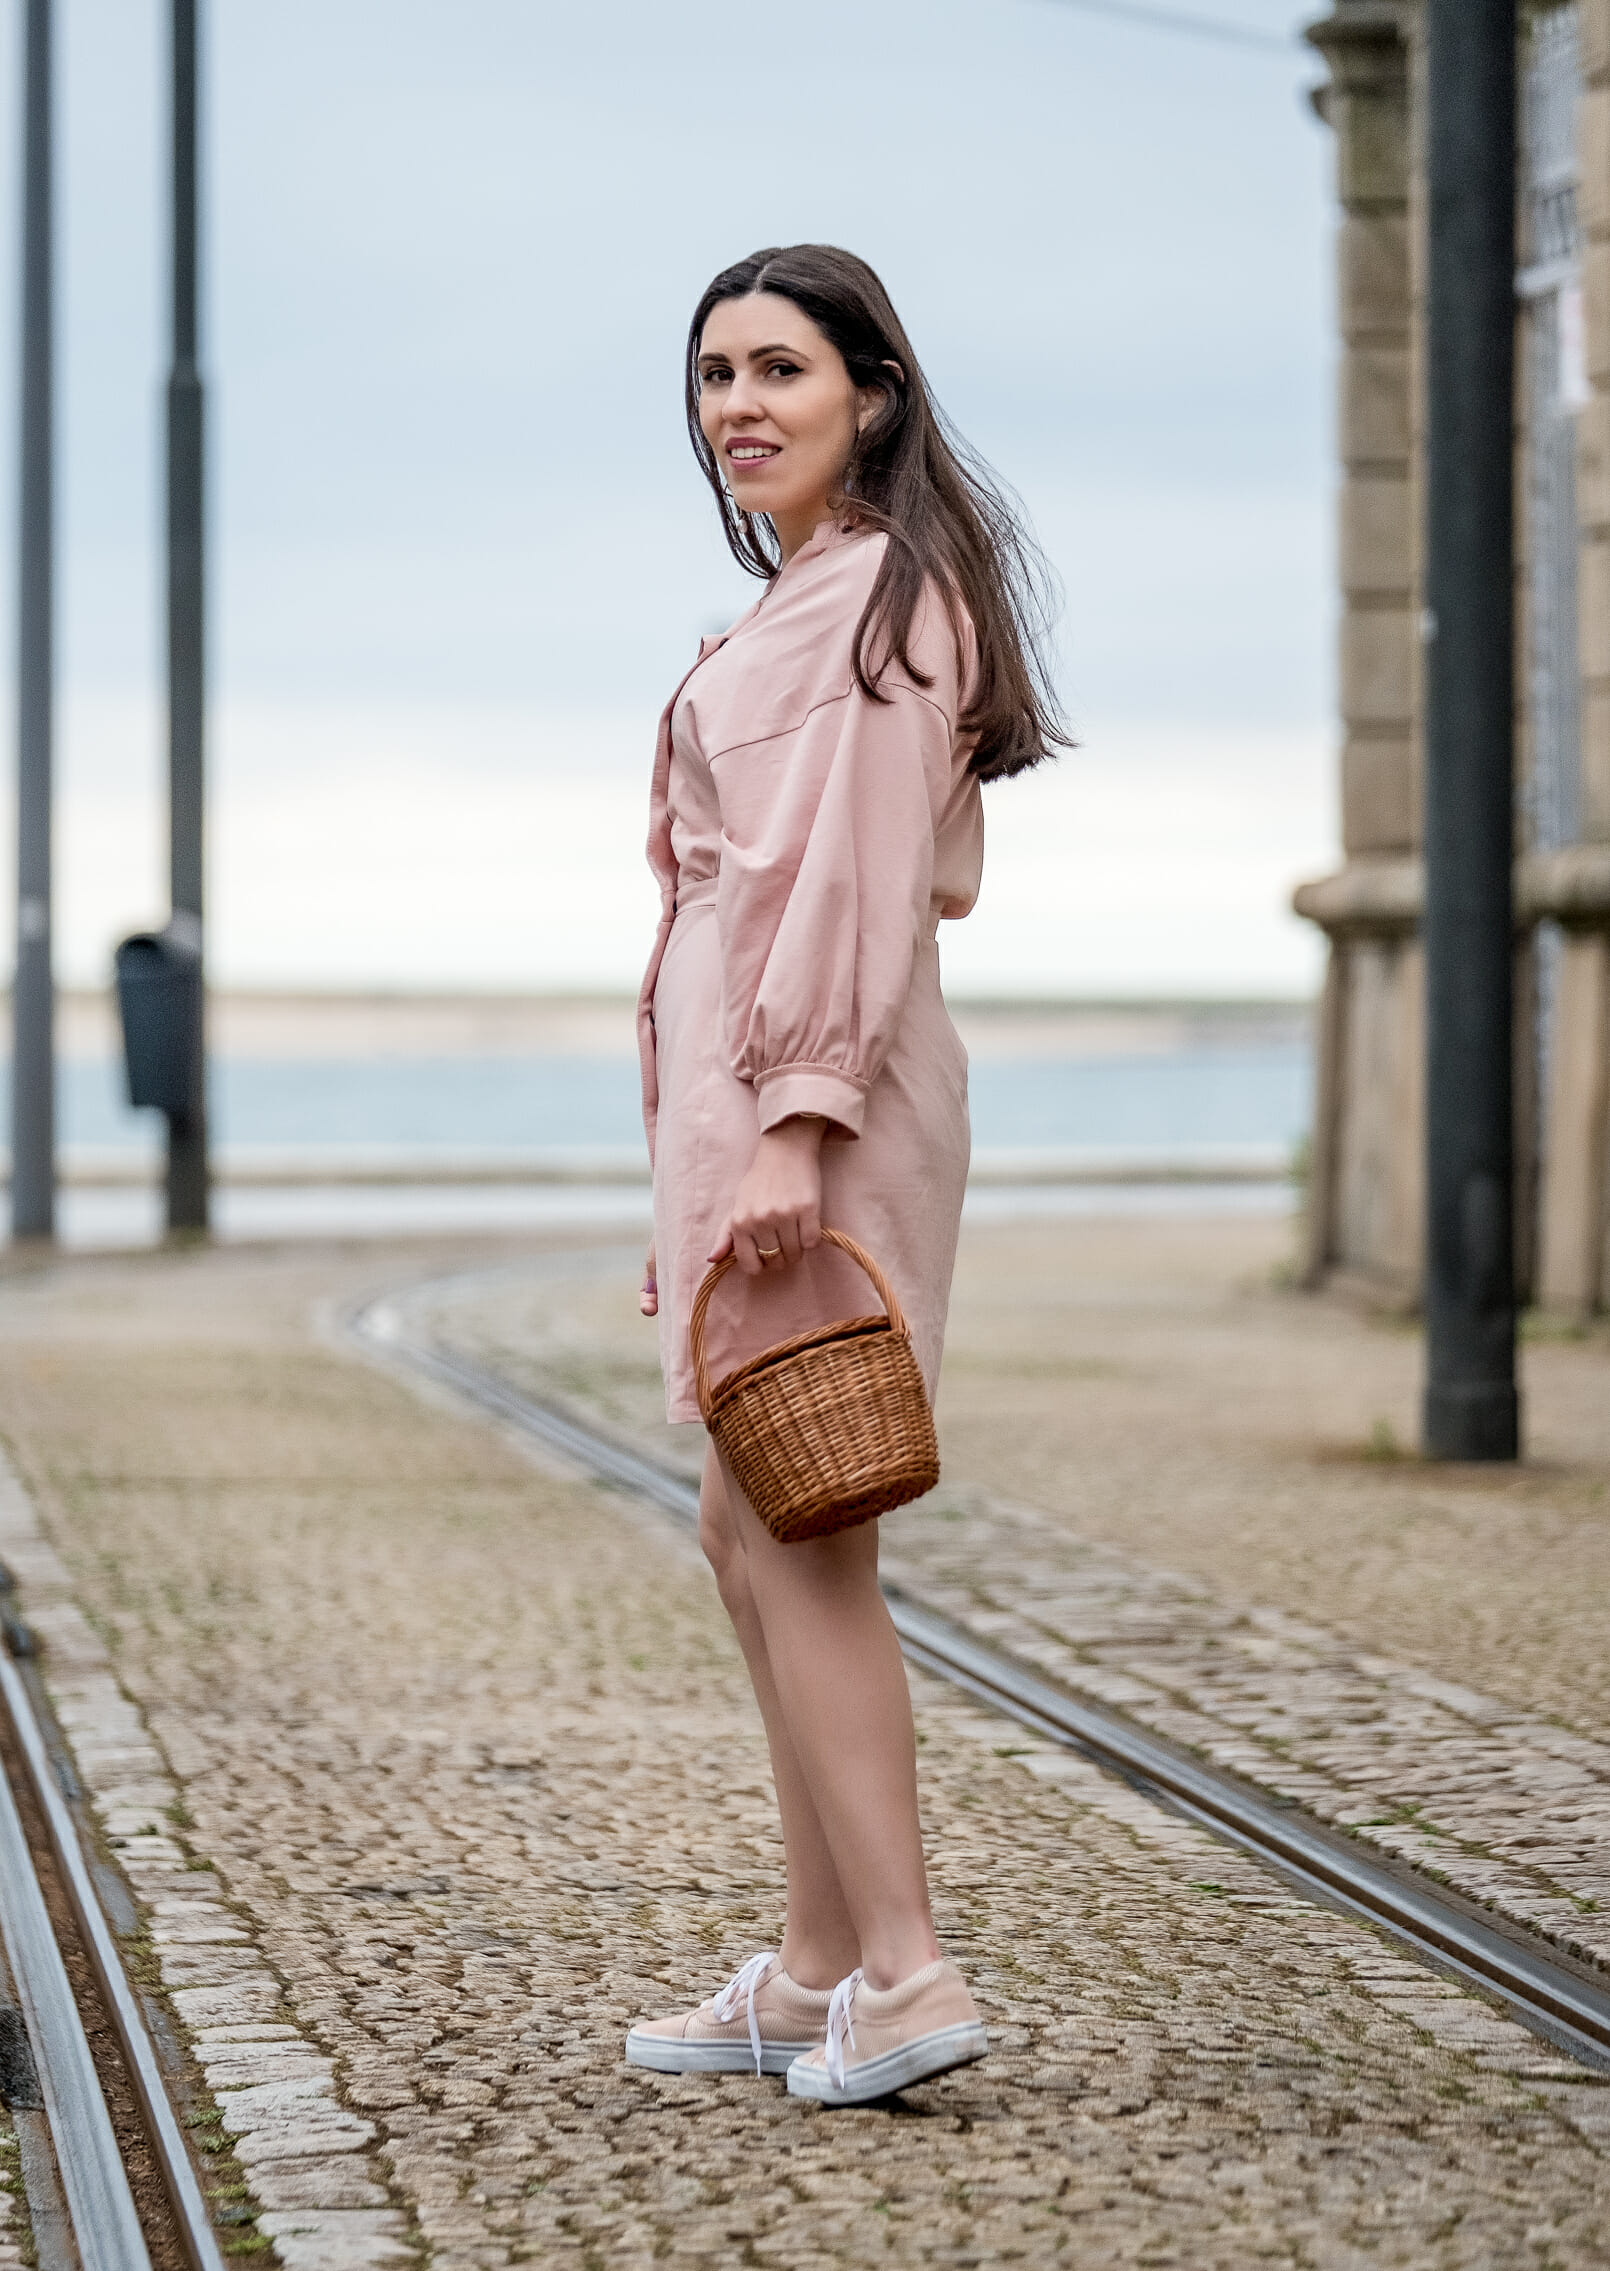 Le Fashionaire pale pink asos dress pale pink polka dots vans la petite sardine straw bag bold colorful earrings mango 0899 EN pale pink asos dress pale pink polka dots vans la petite sardine straw bag bold colorful earrings mango 0899 EN